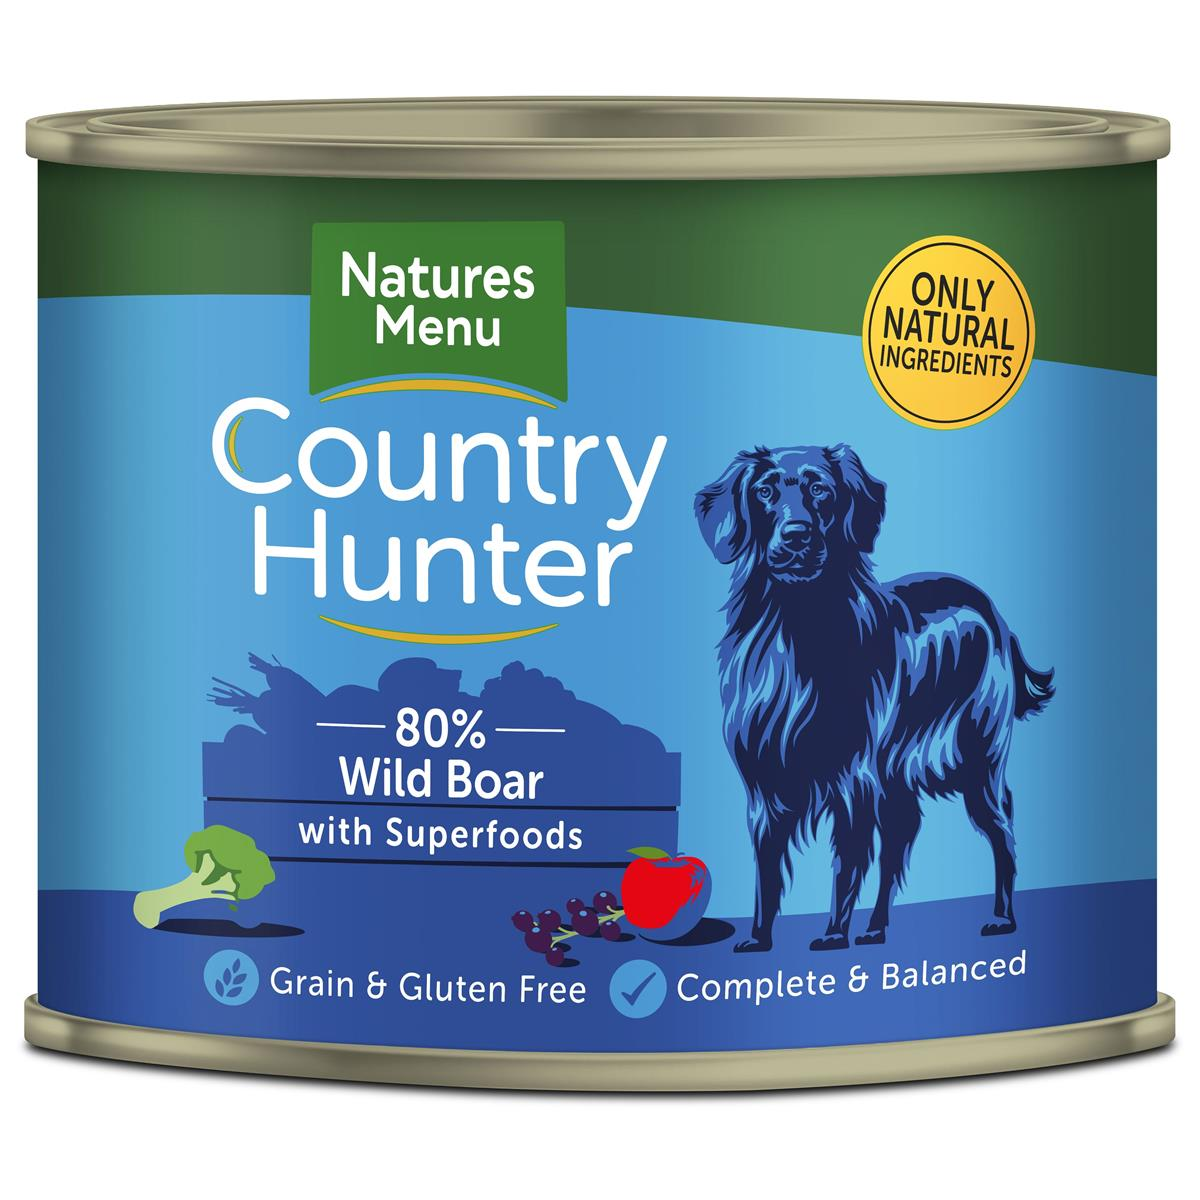 NM Boksemat Hund Country Hunter 80% Villsvin 600g (6stk) Blå